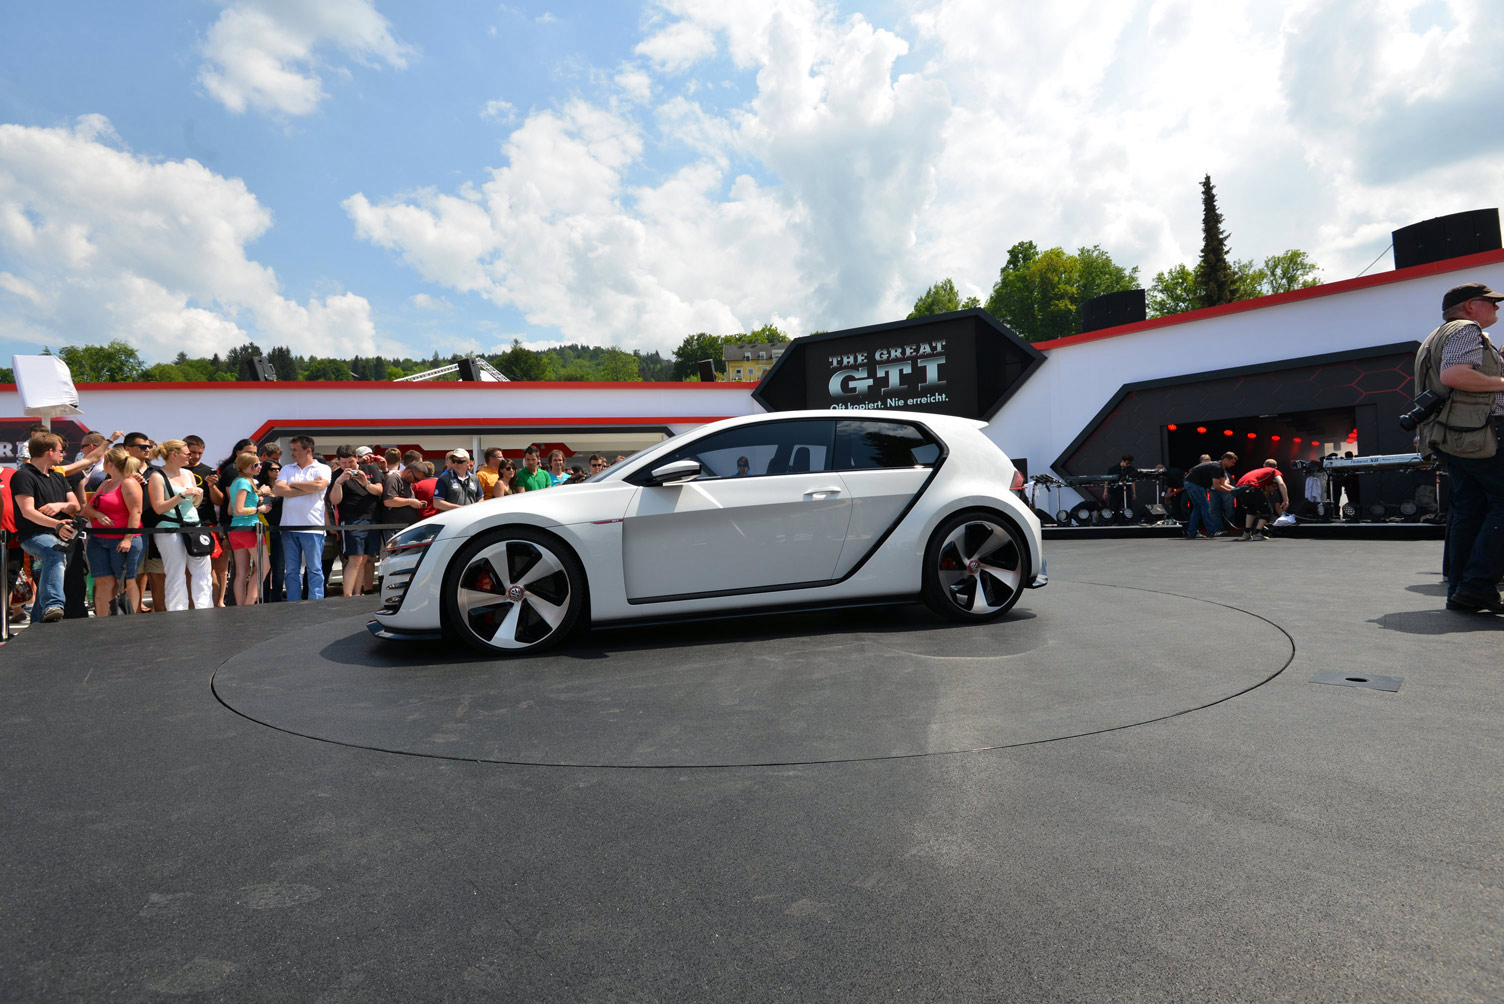 volkswagen-design-vision-gti-worthersee-029